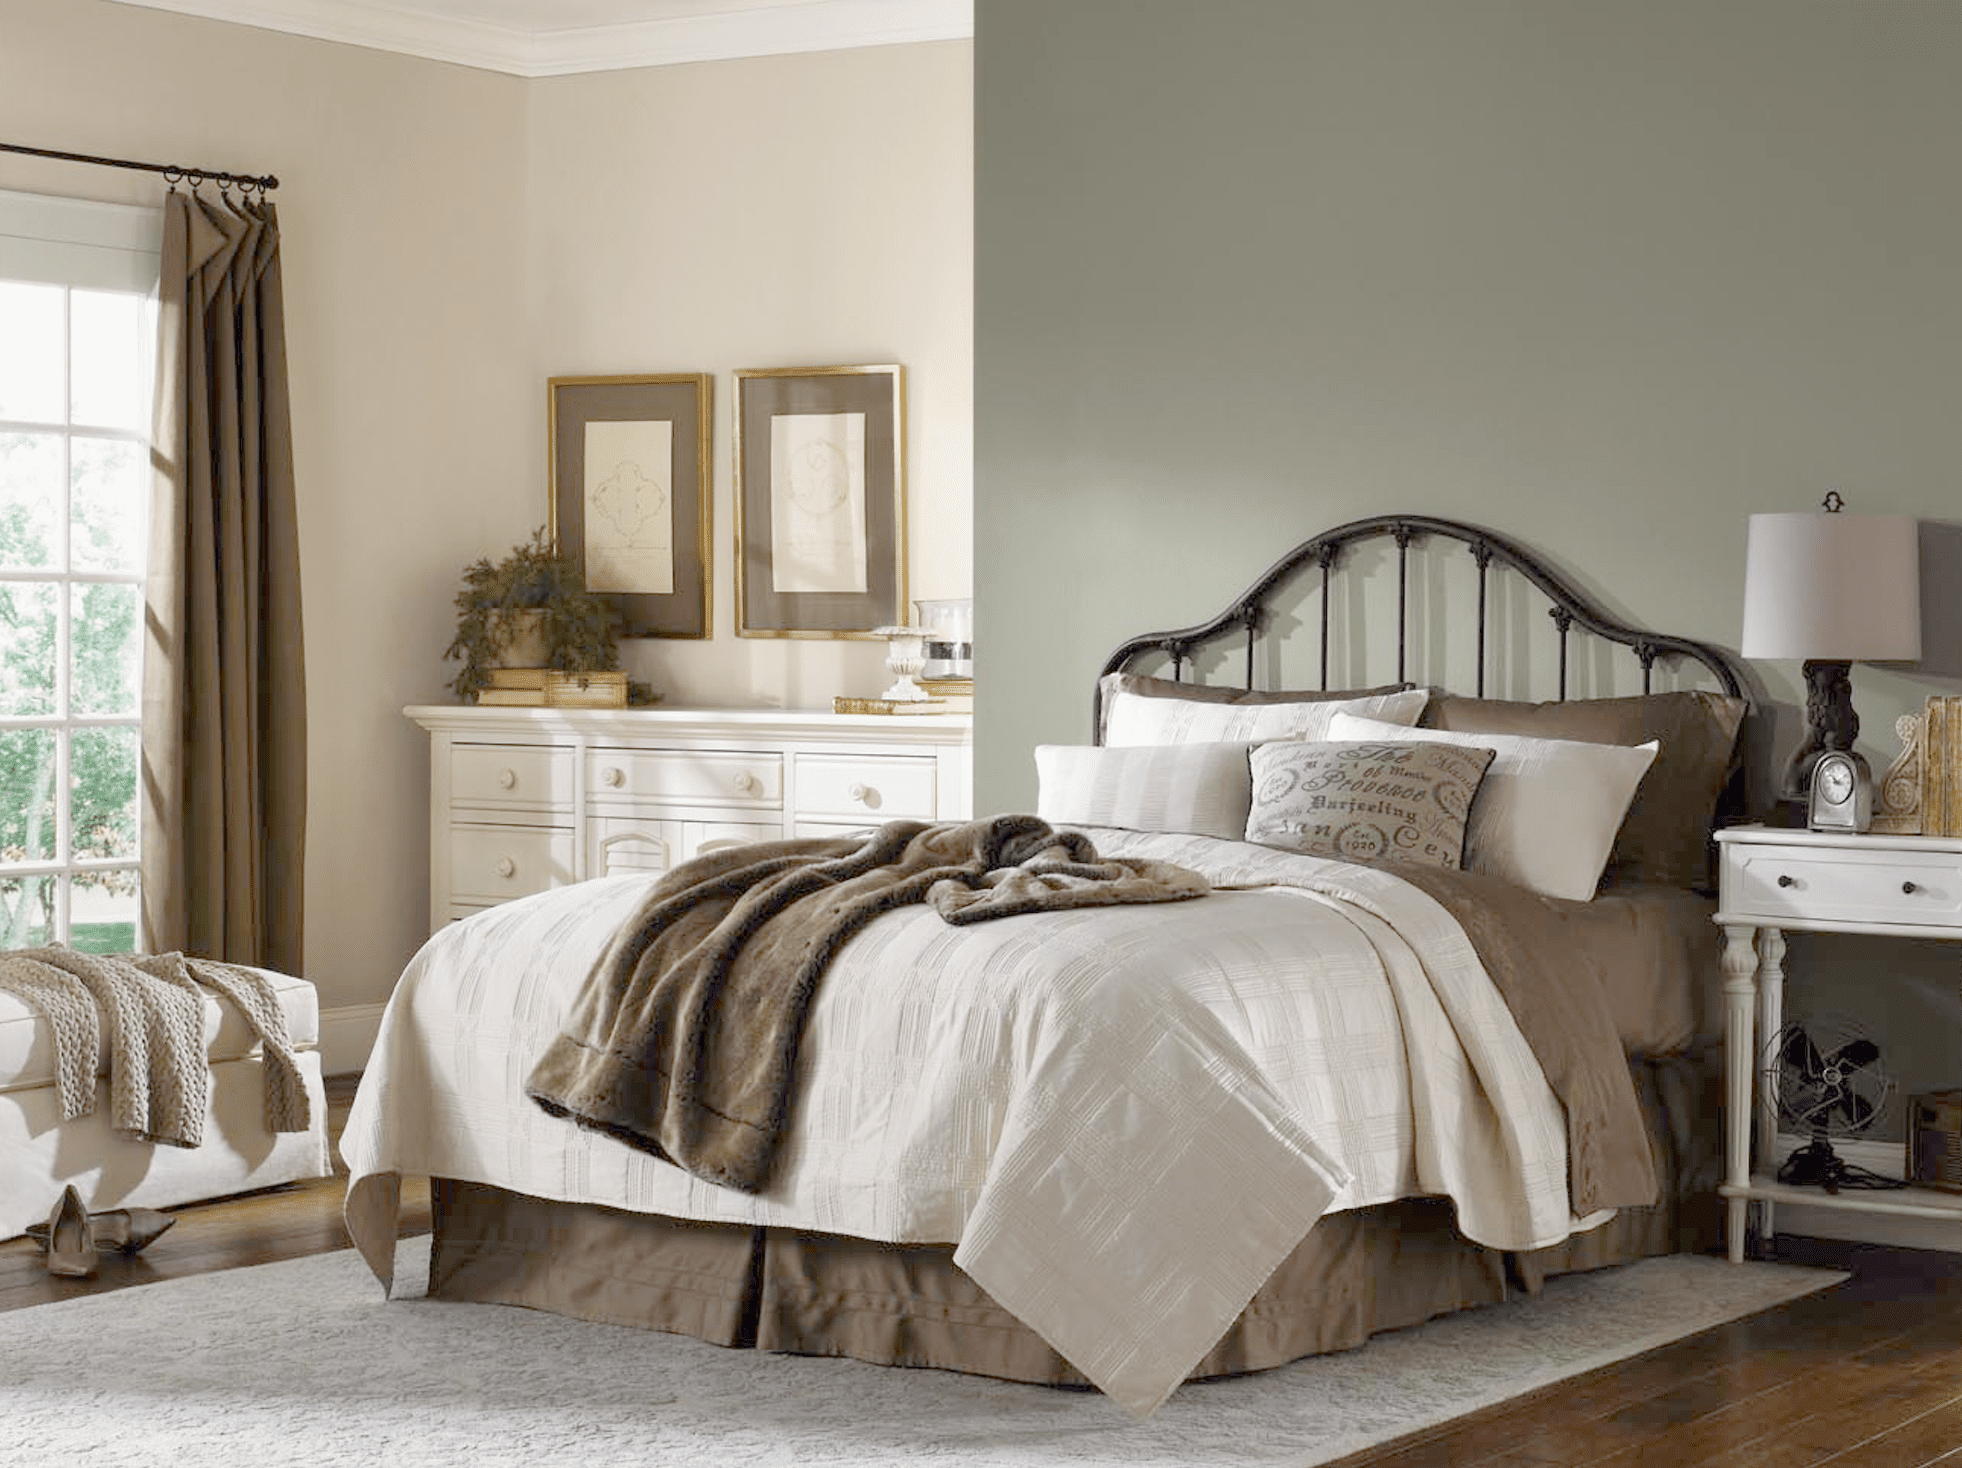 8 Relaxing Sherwin Williams Paint Colors For Bedrooms Sherwin Williams Bedrooms Colors Bedroom Paint Colors Master Relaxing Master Bedroom